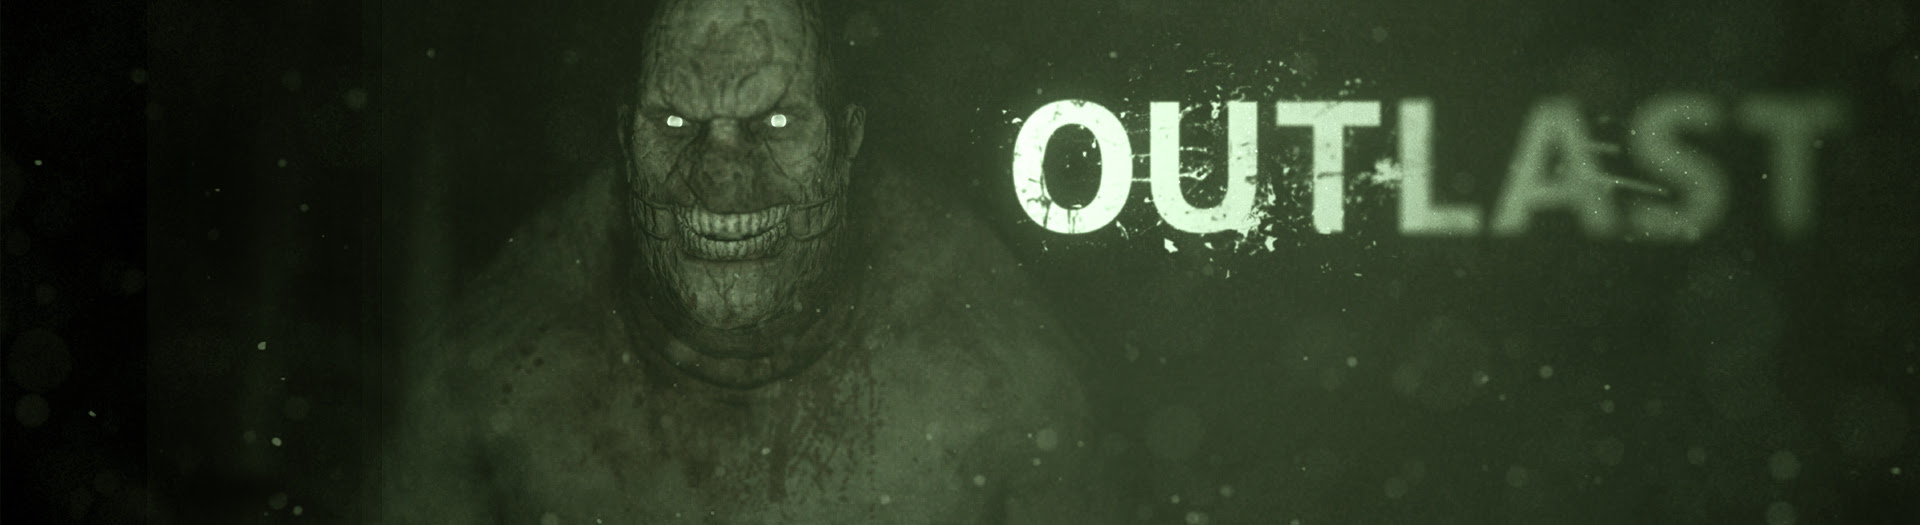 Review Outlast - Scary Stories